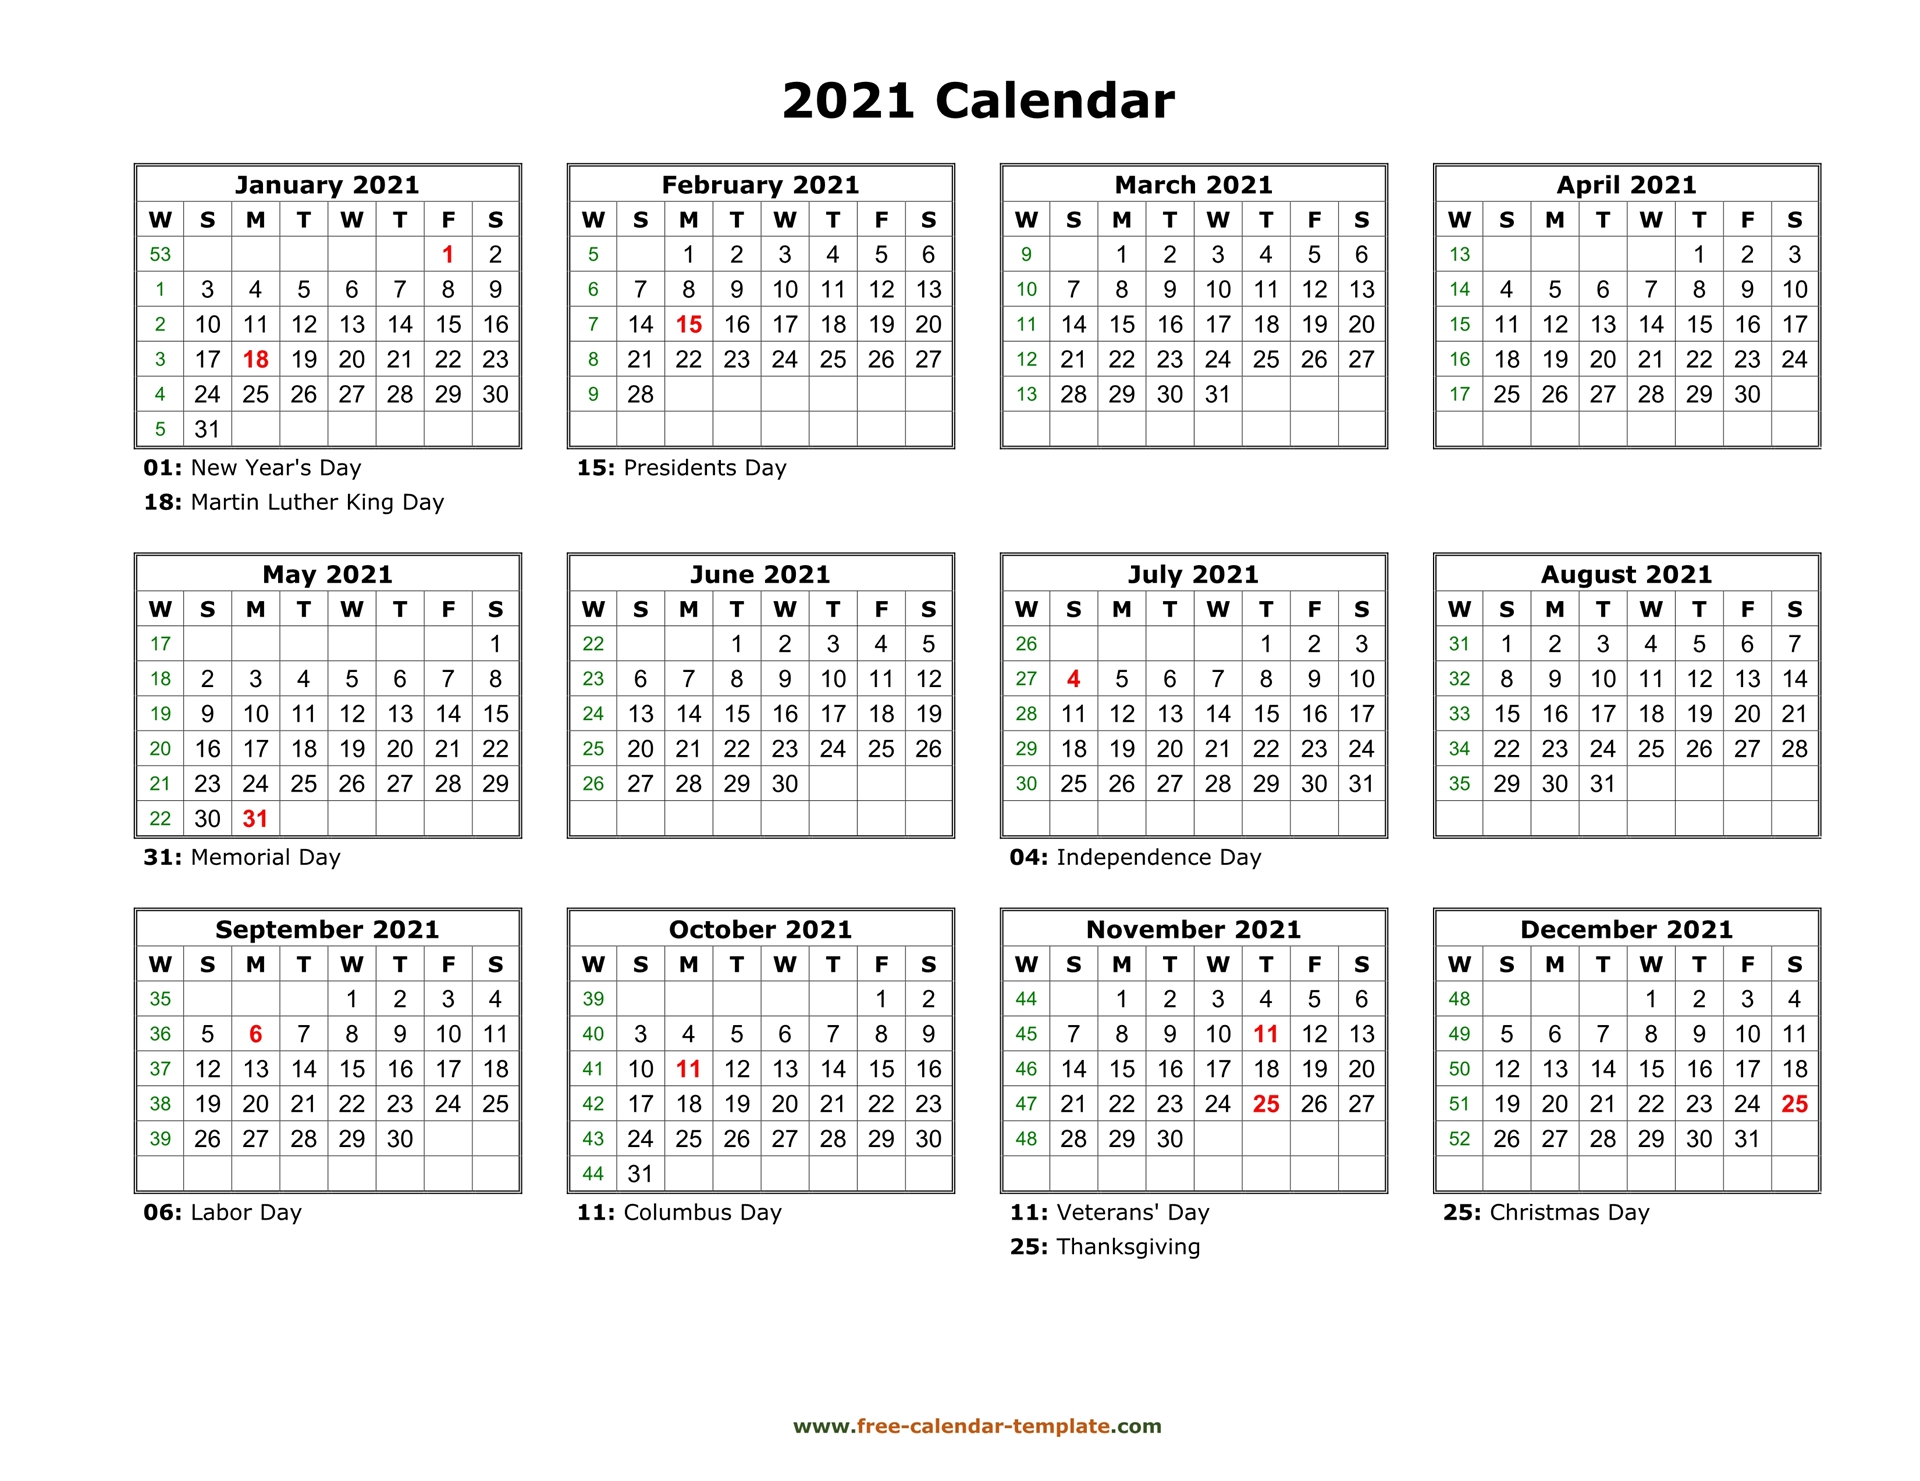 Yearly calendar 2021 printable with federal holidays ...